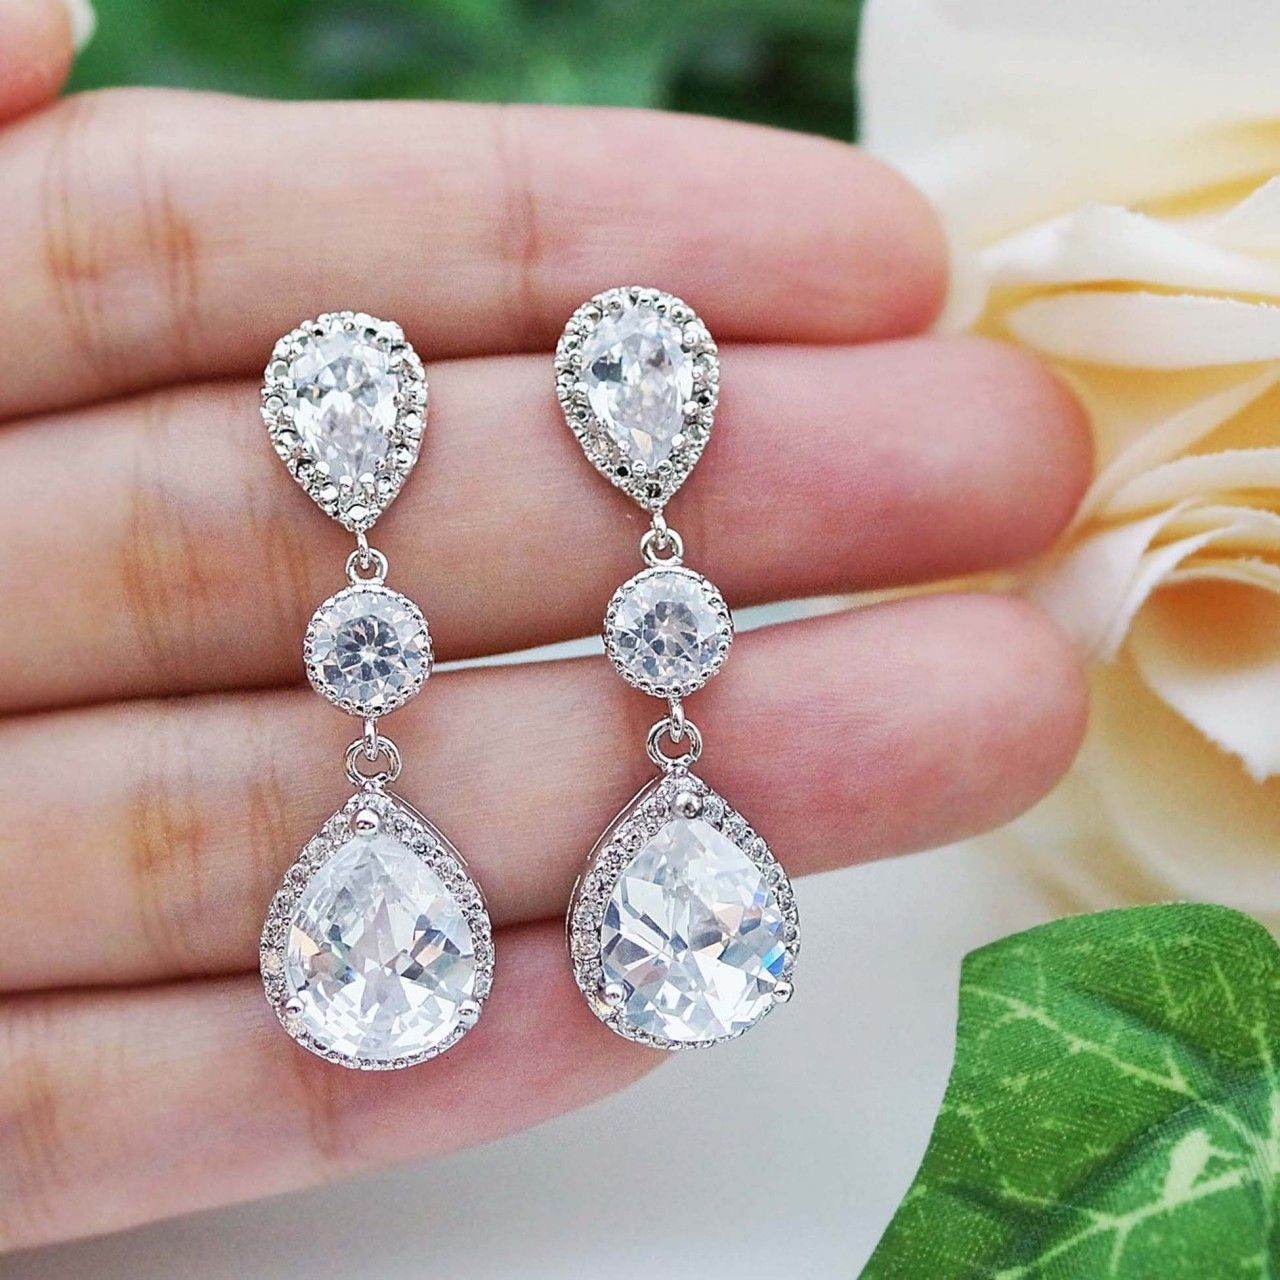 LUX Cubic Zirconia with CZ connector Bridal Earrings   Bridal ...